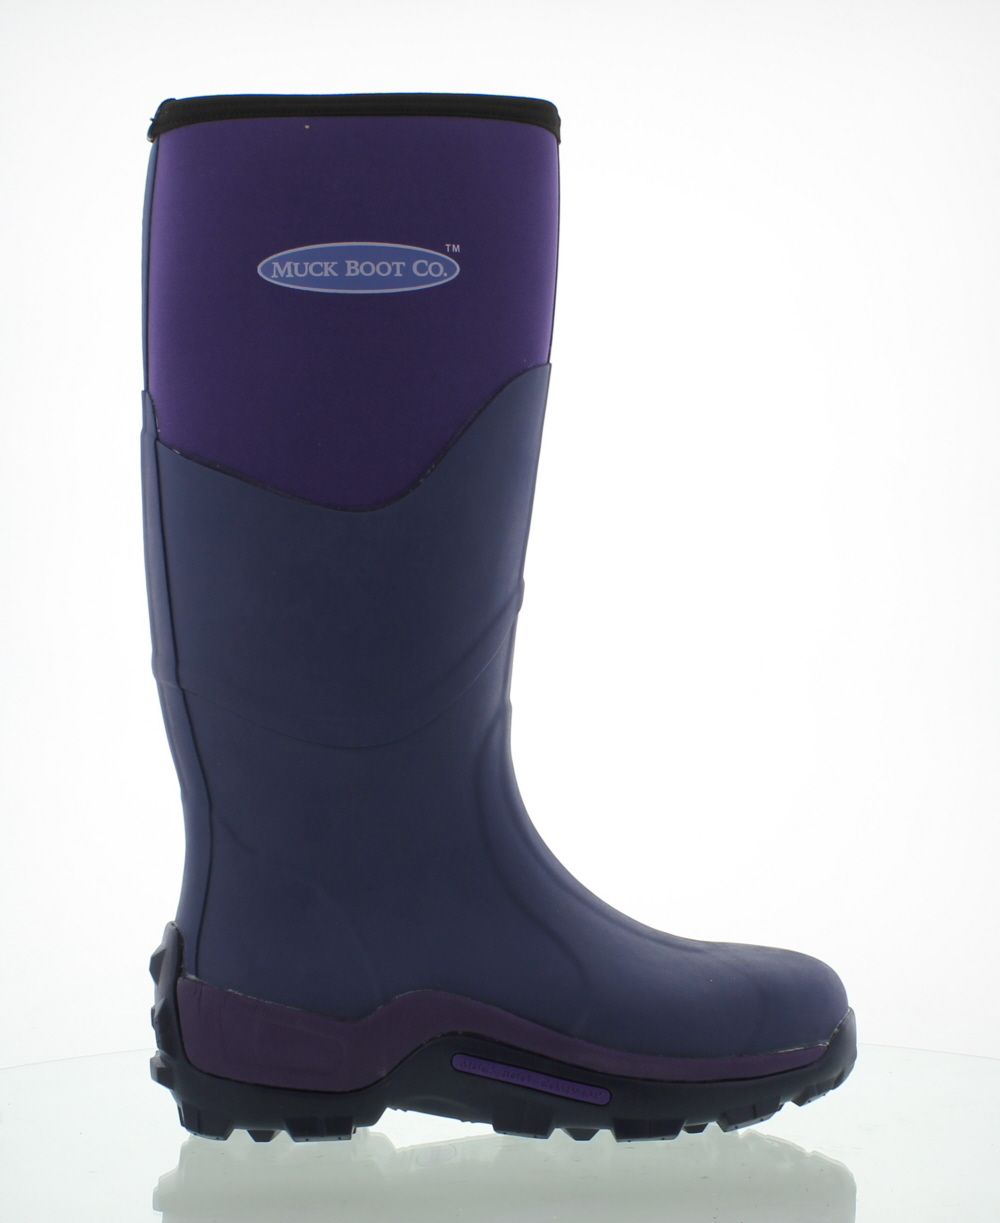 Womens Neoprene Muck Boots - All About Boots